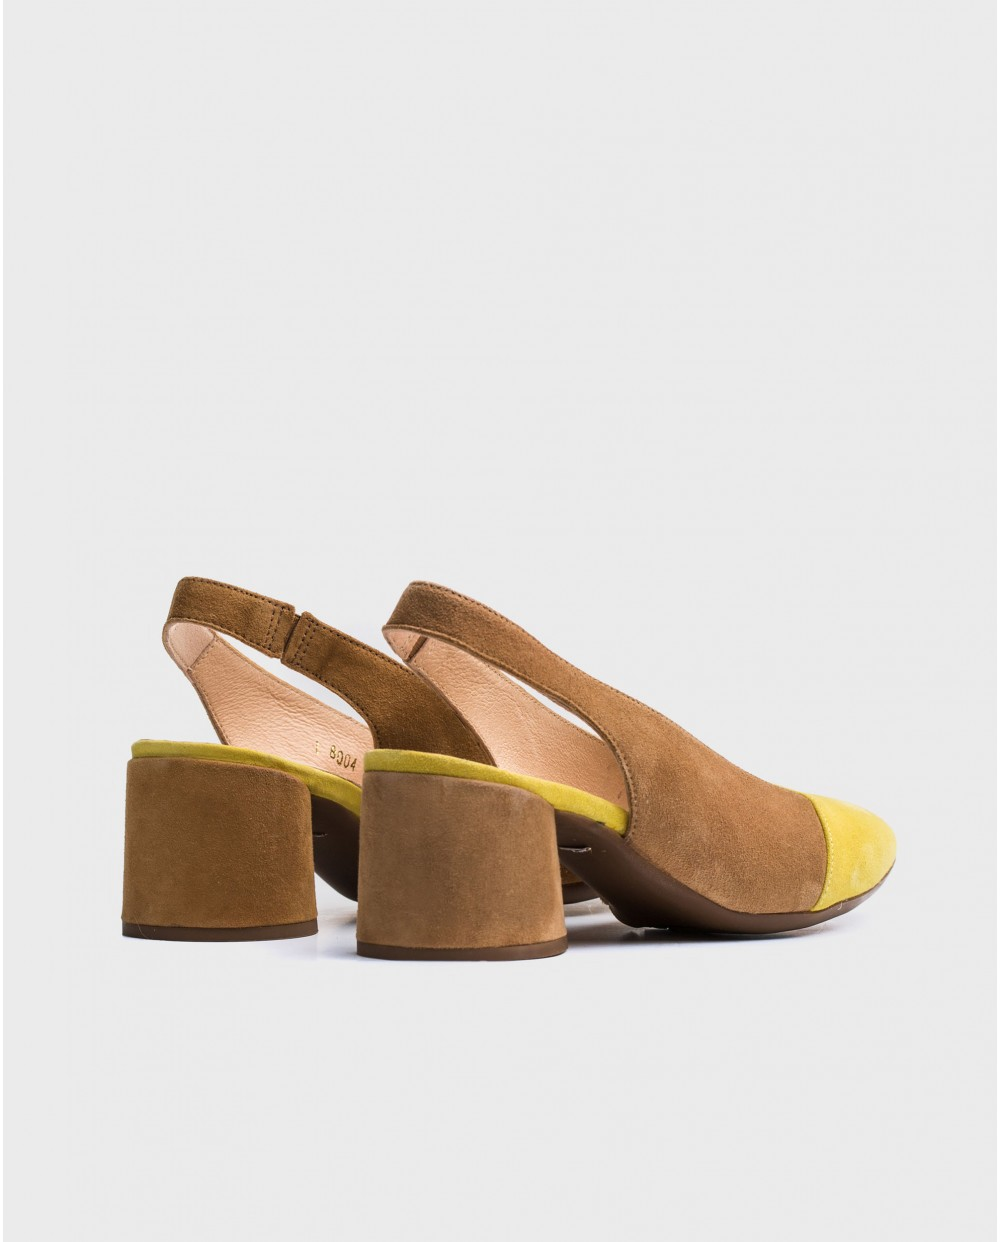 Wonders-Heels-Leather two/tone suede shoes